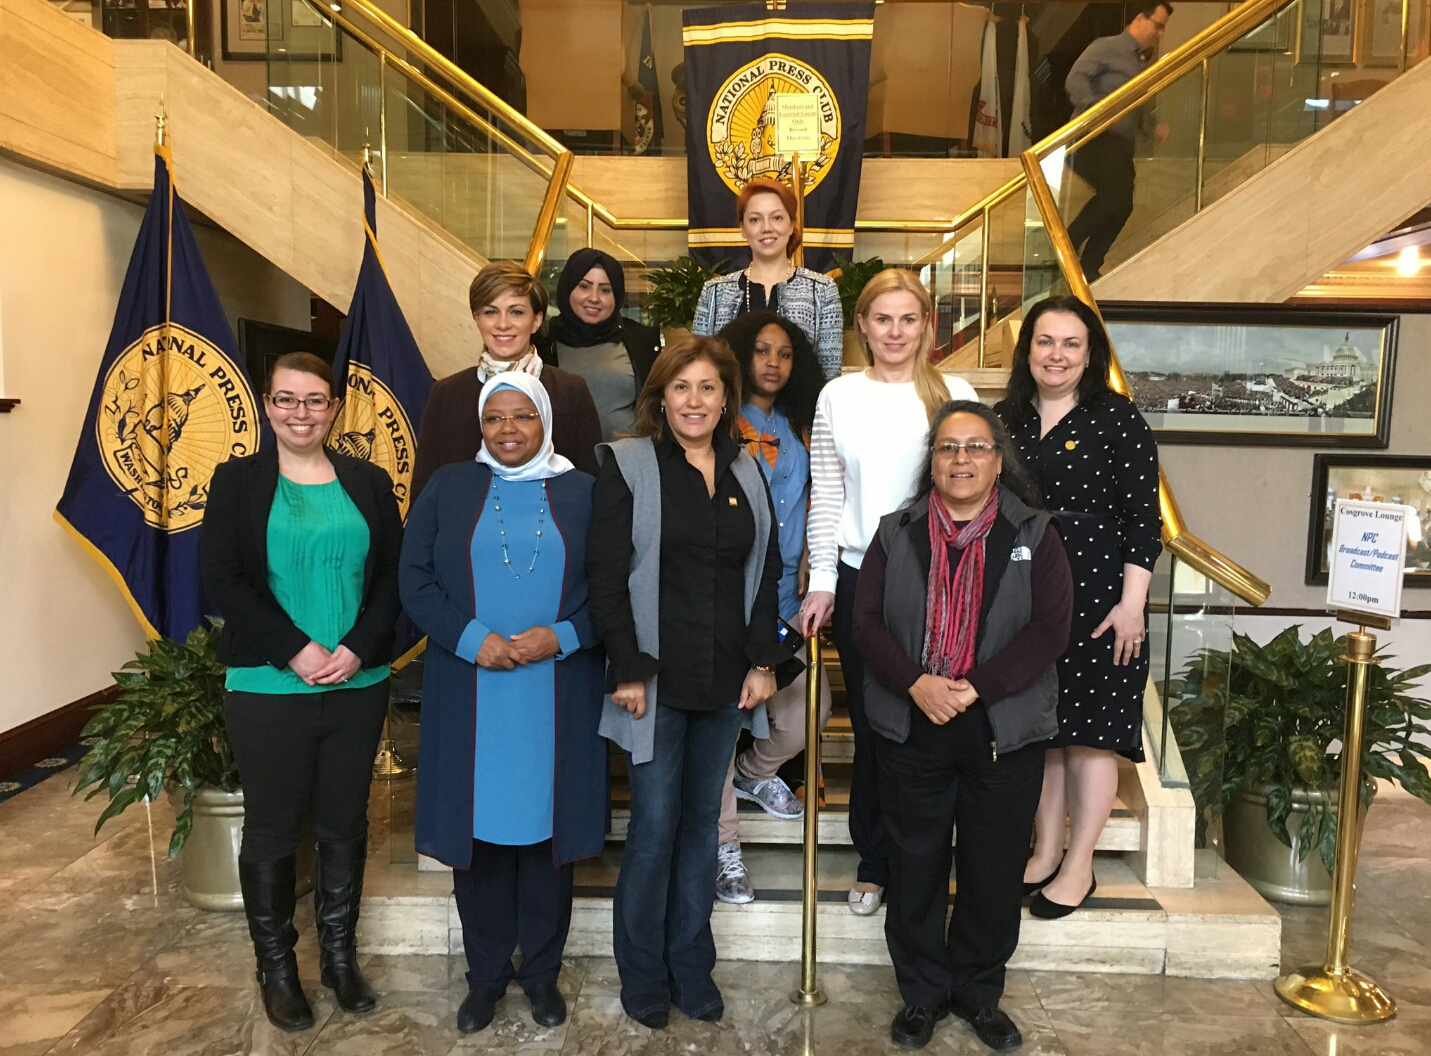 WhiteHat Magazine and Diplomatic Courier host the Women's Democracy Network fellows.